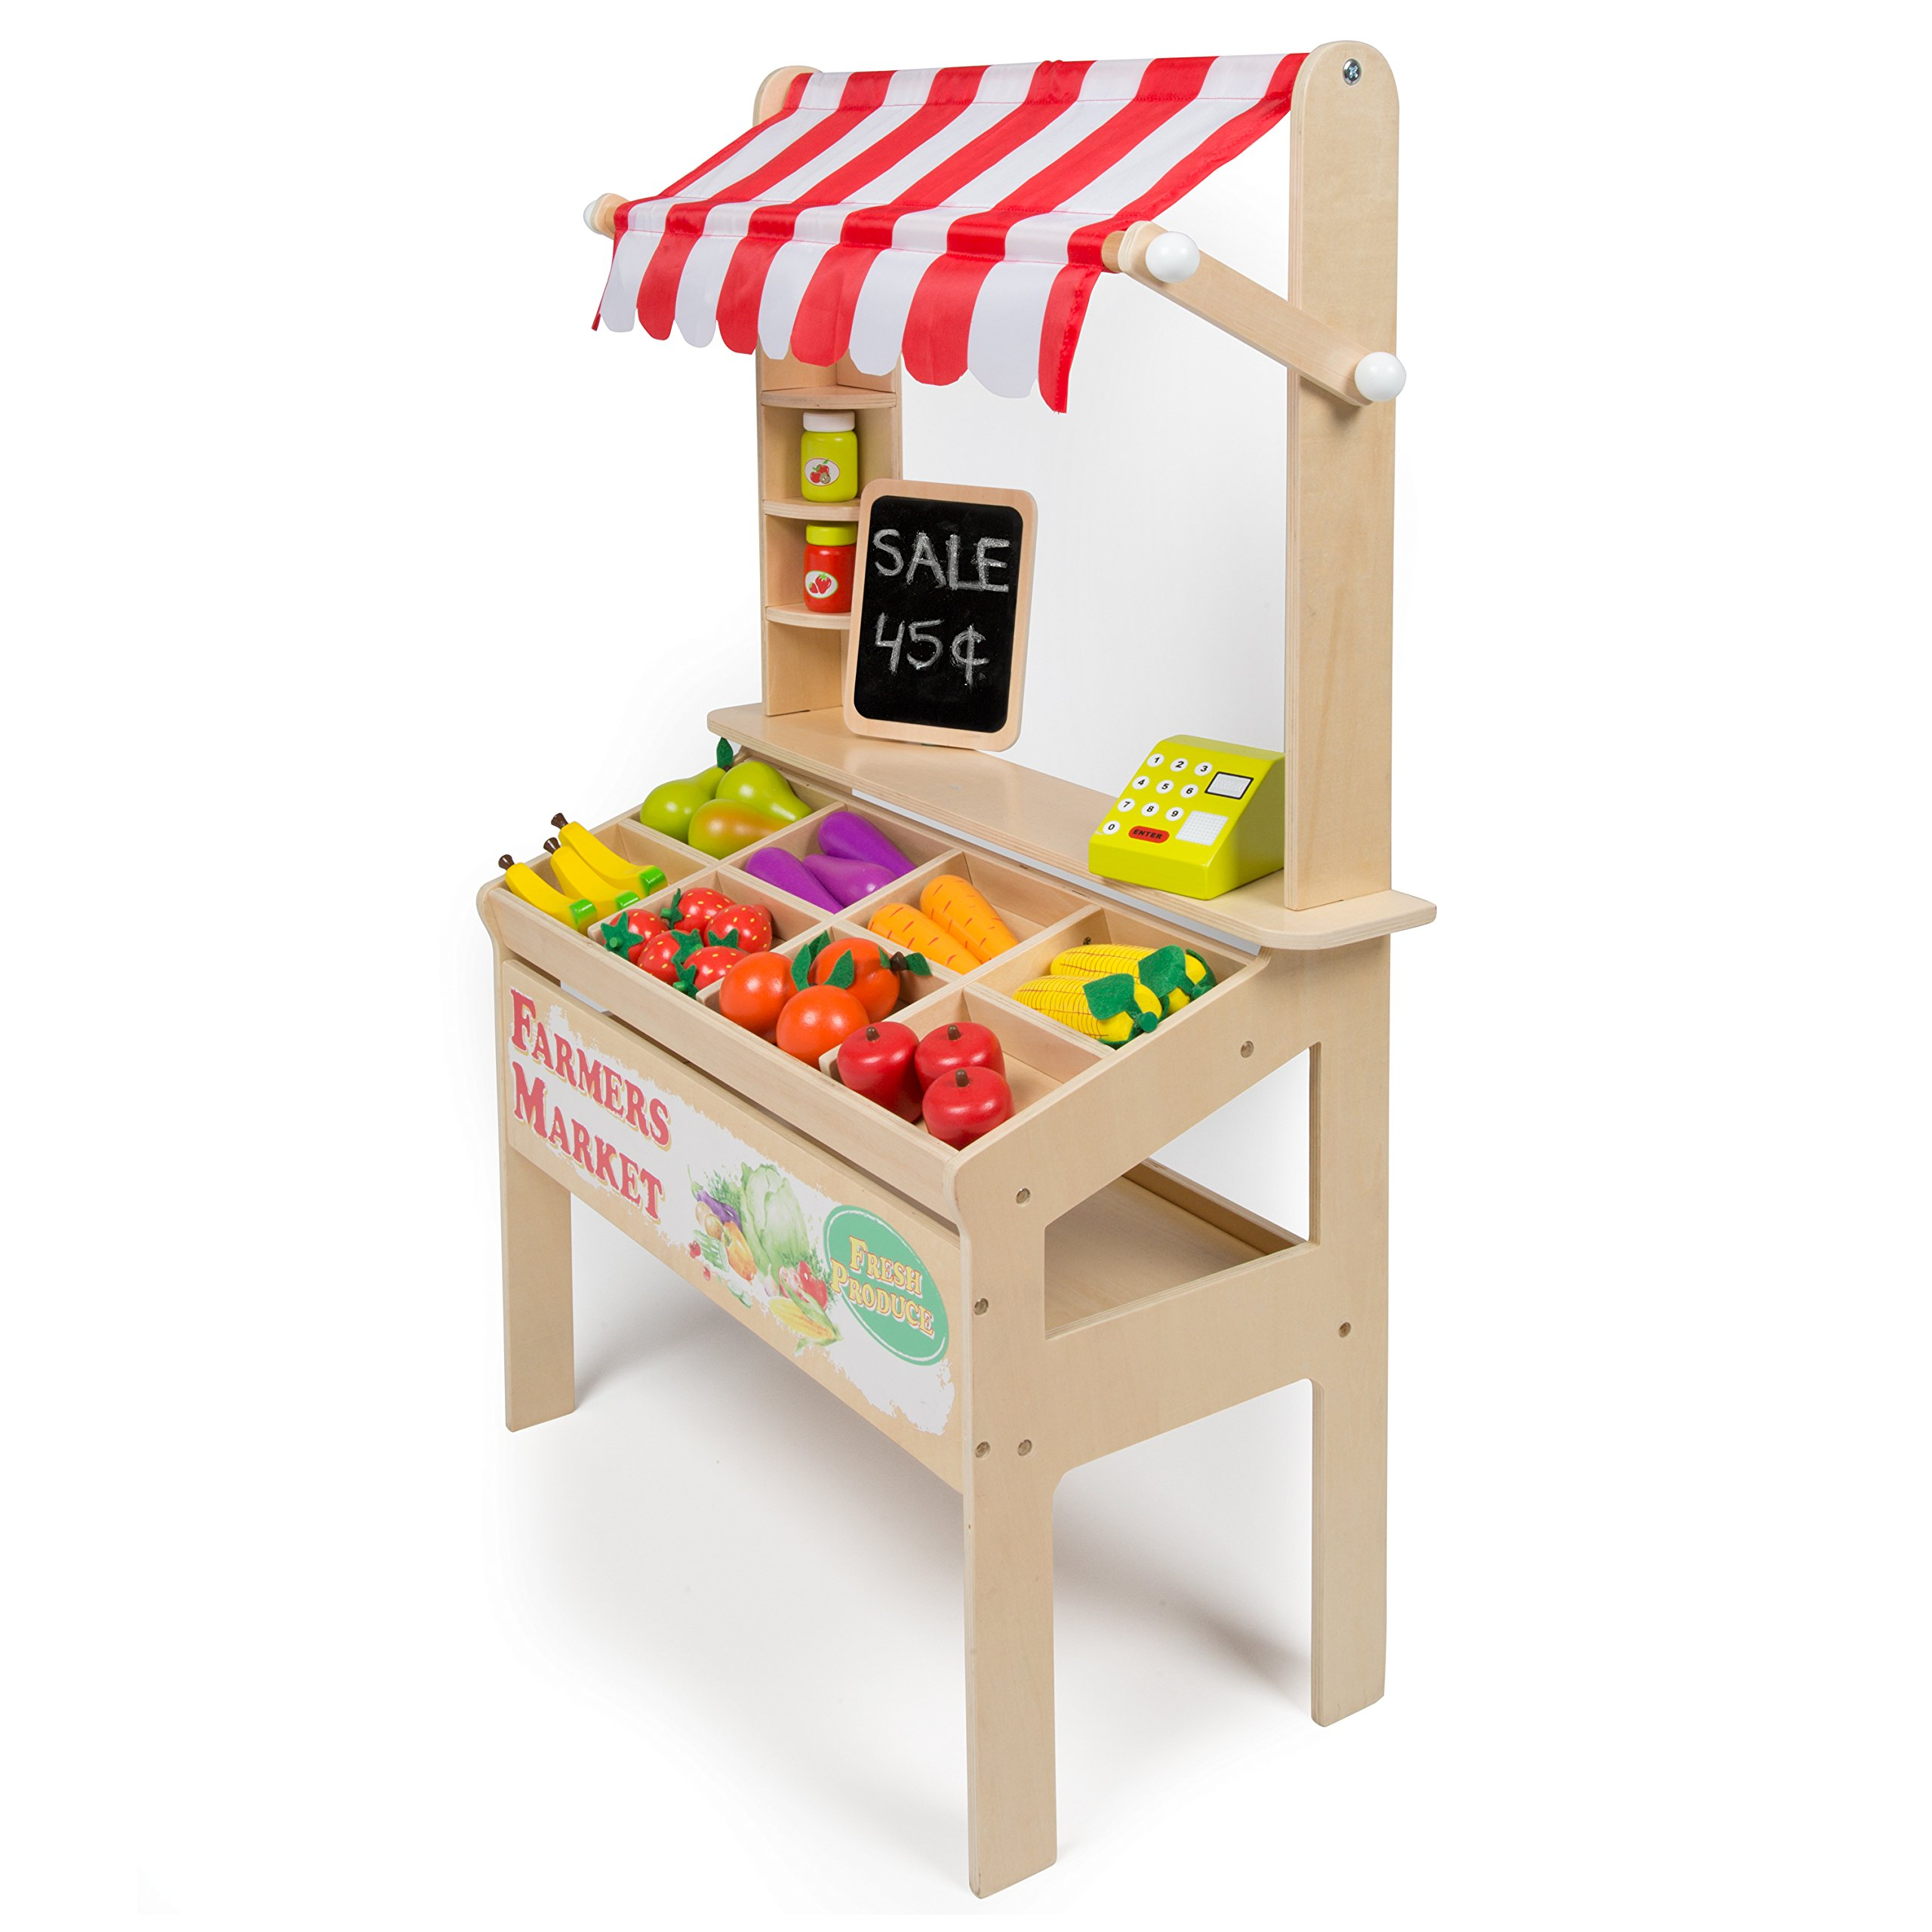 Wooden Farmers Market Stand - Kid's Playroom Furniture Grocery Stand for Pretend Play (30+ Pieces) - Includes Fruit, Chalkboard, and Cash Register